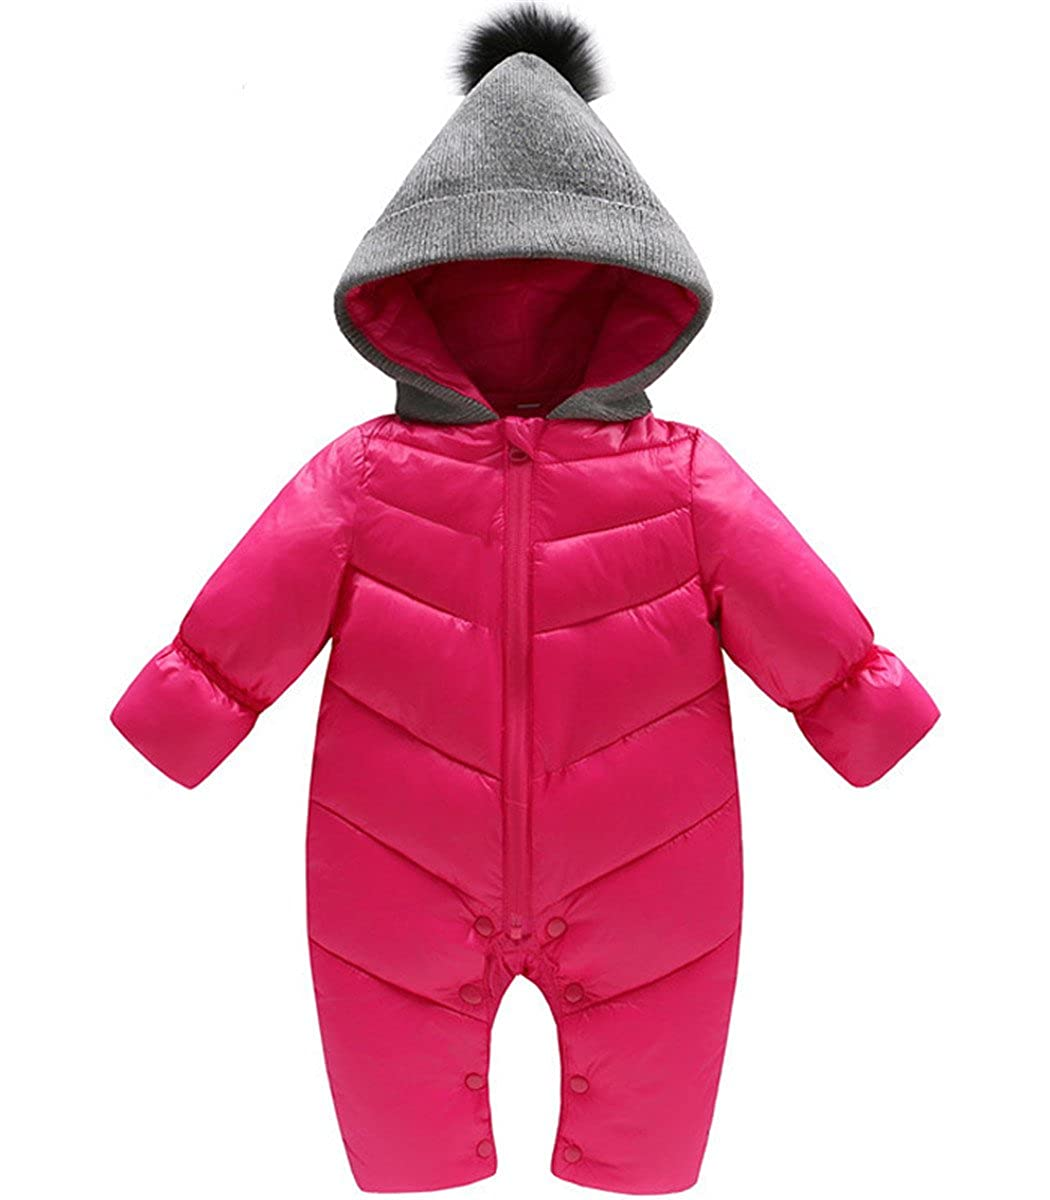 4a380b87ee1f Amazon.com  Baby Girls Boys One Piece Front Zippers Button Winter ...